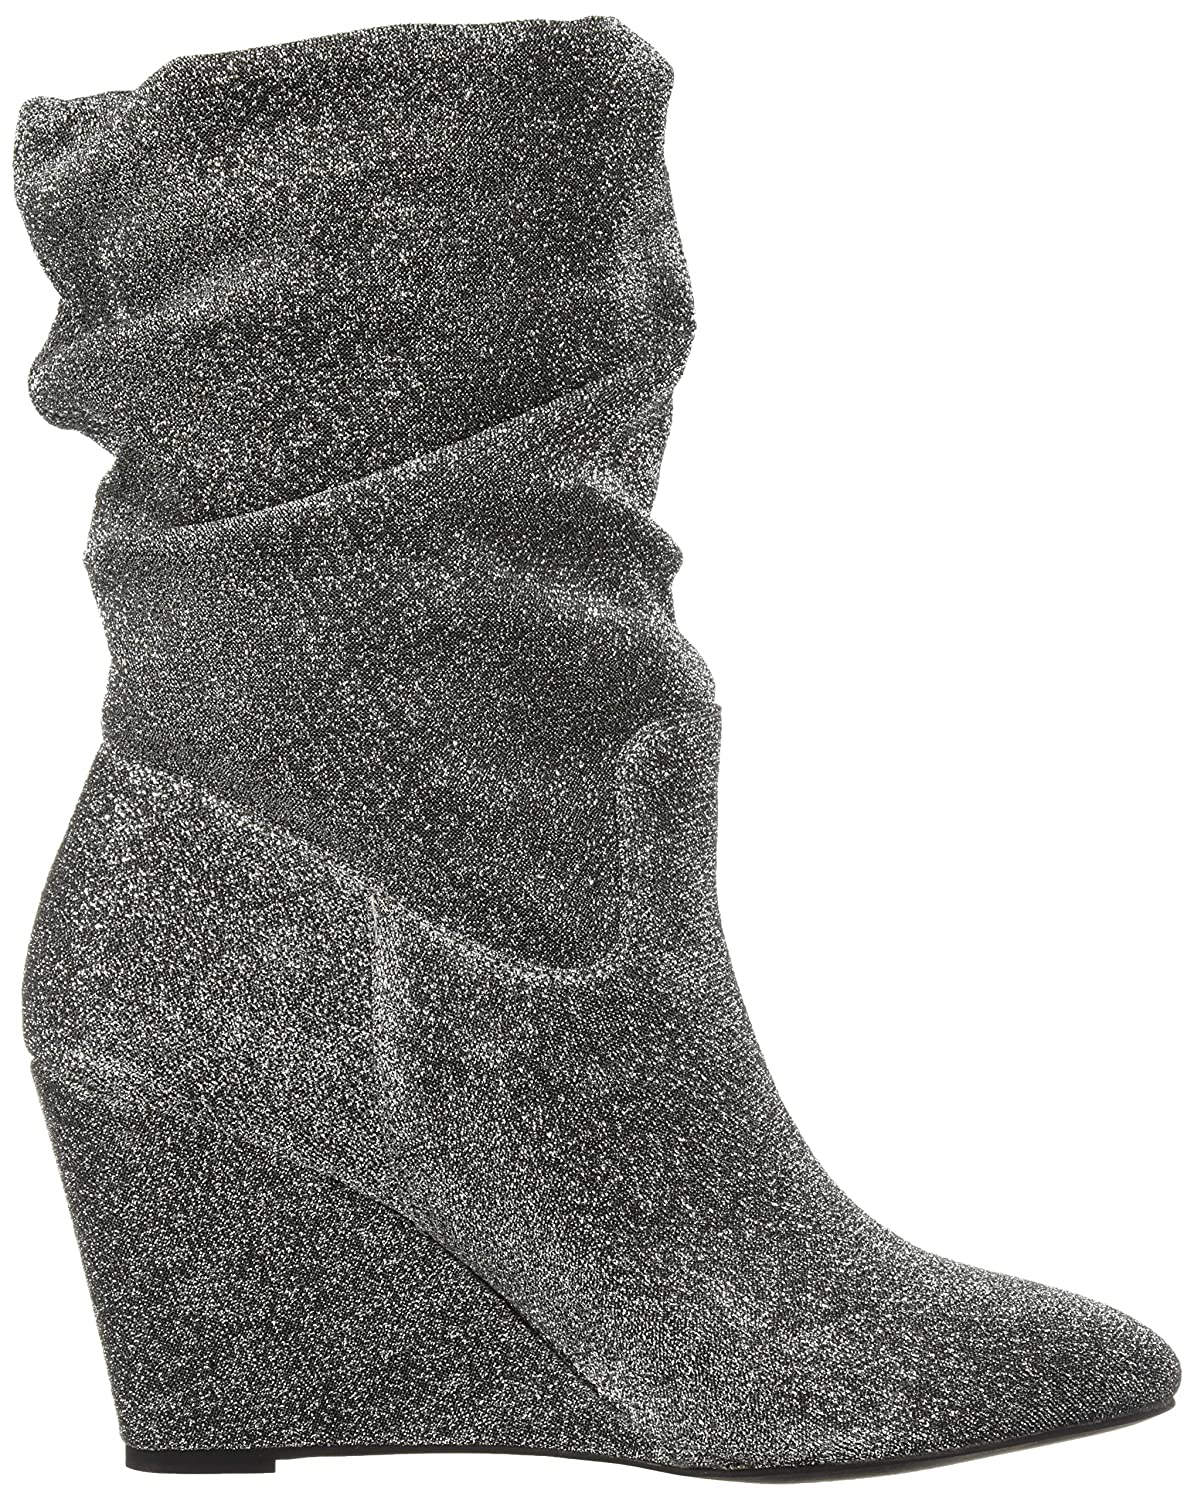 7.5 M US Shimmer Athena Alexander Womens Nice Ankle Boot